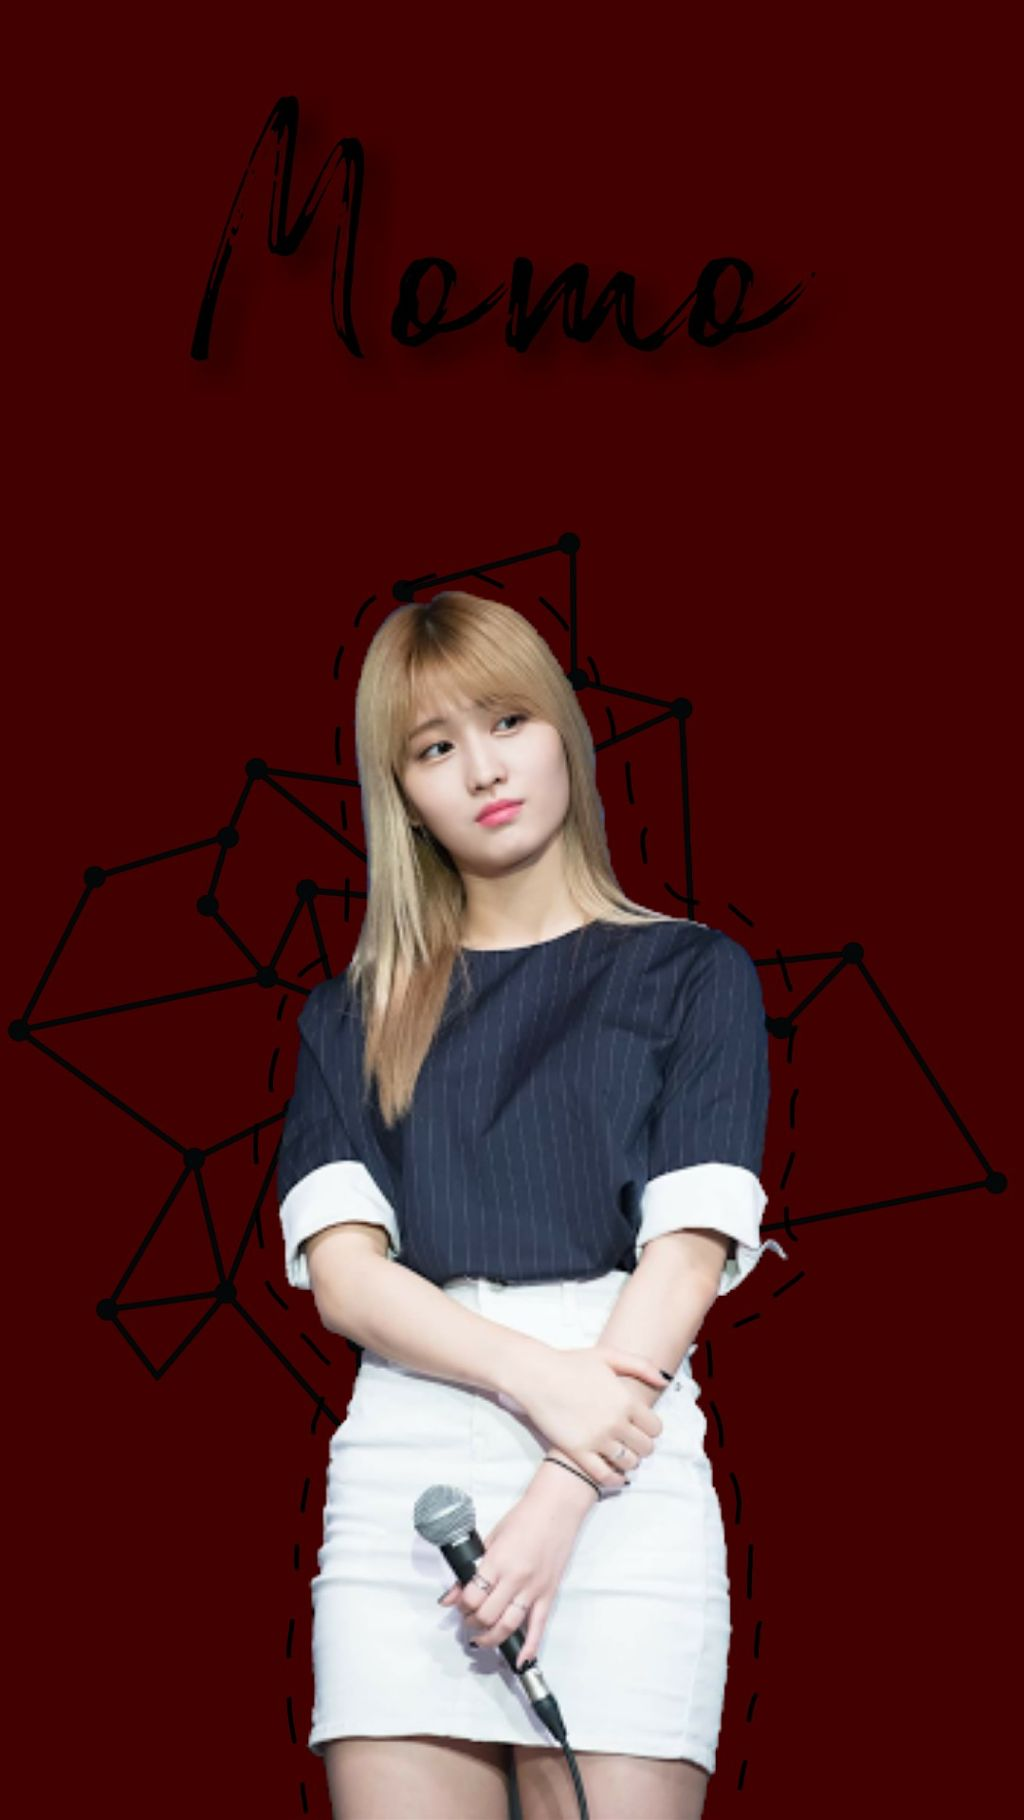 Twice Momo Red Wallpaper Image By Ana